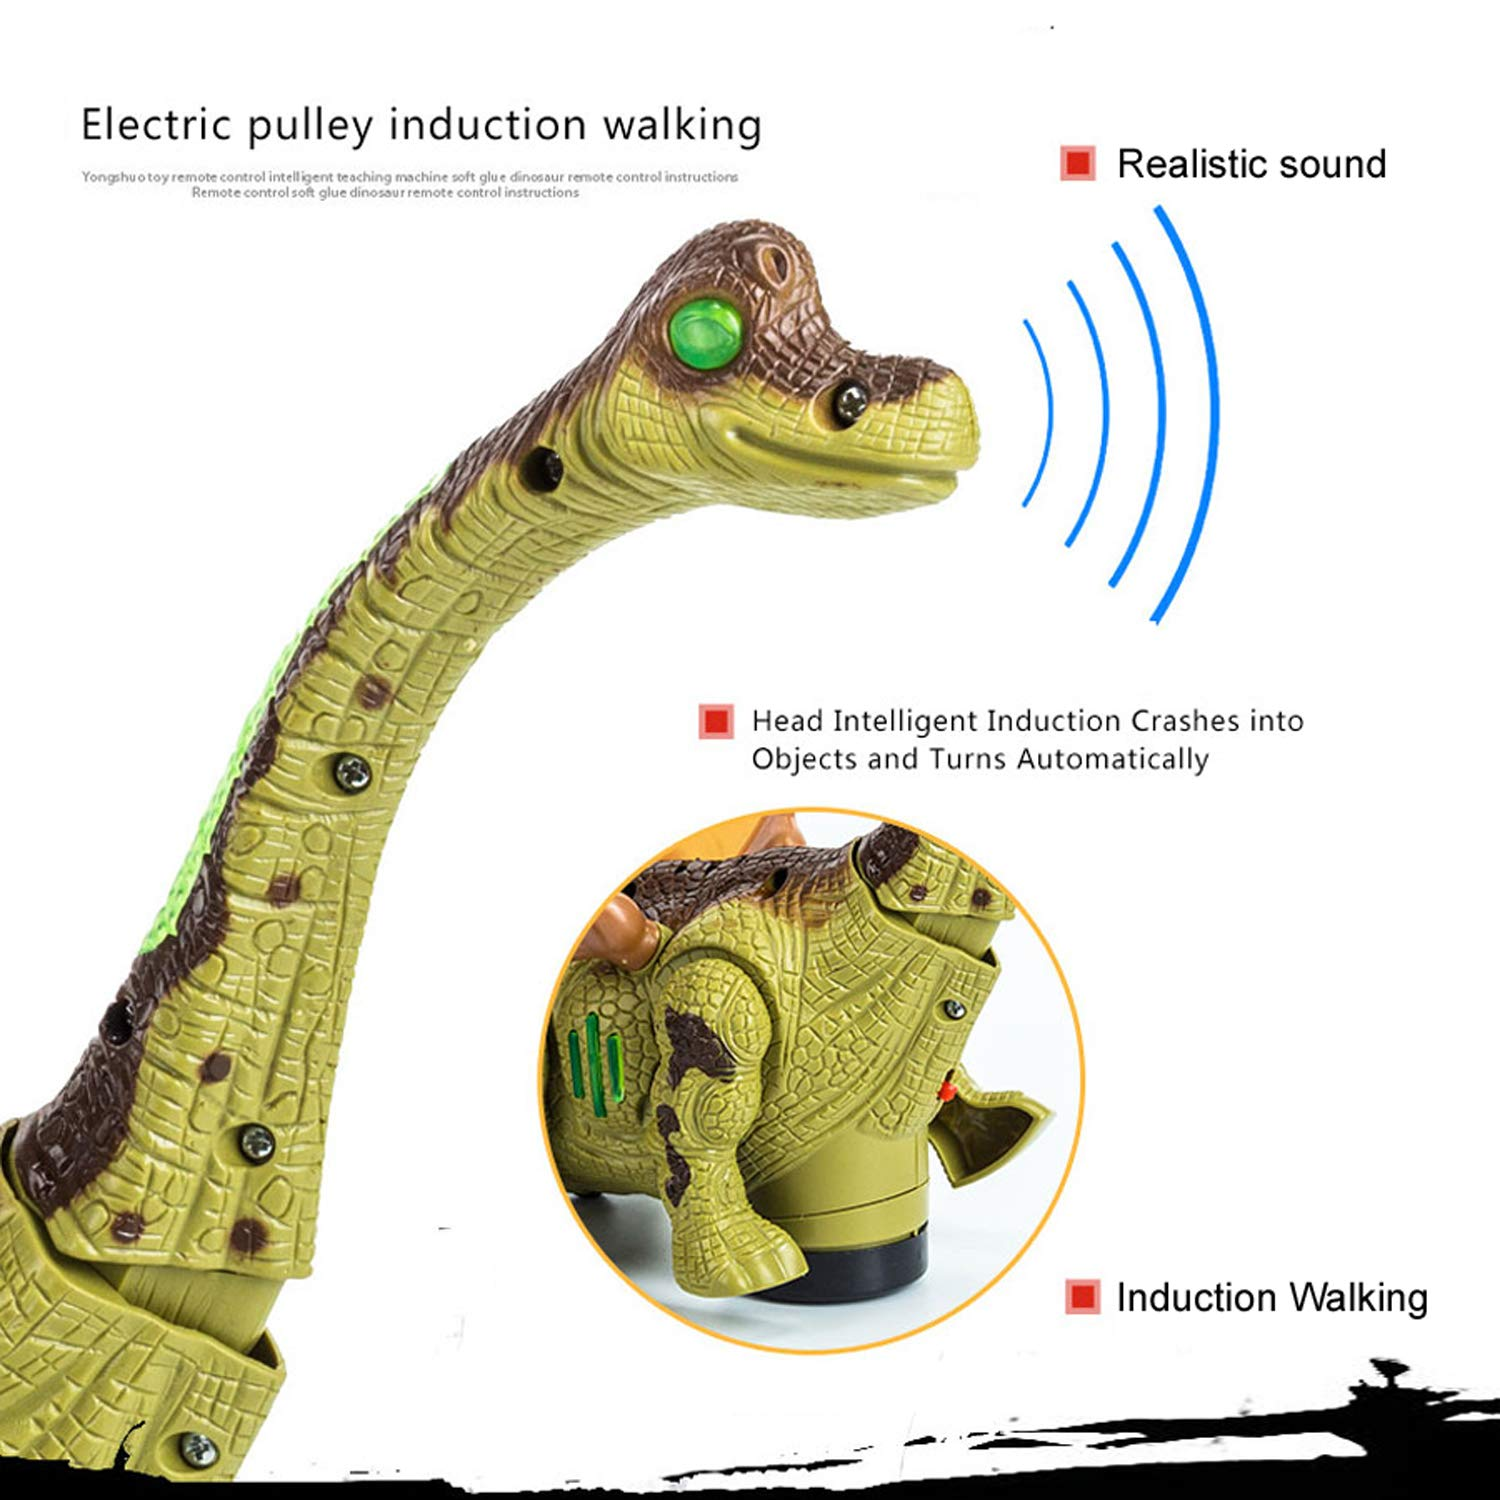 Mrocioa Electronic Dinosaur Toys Walking with Light up&Sound,Big Dino Action Figure 40cm Long for Toddler Boys,Shaking its Tail and Long Neck (Green) by Mrocioa (Image #3)